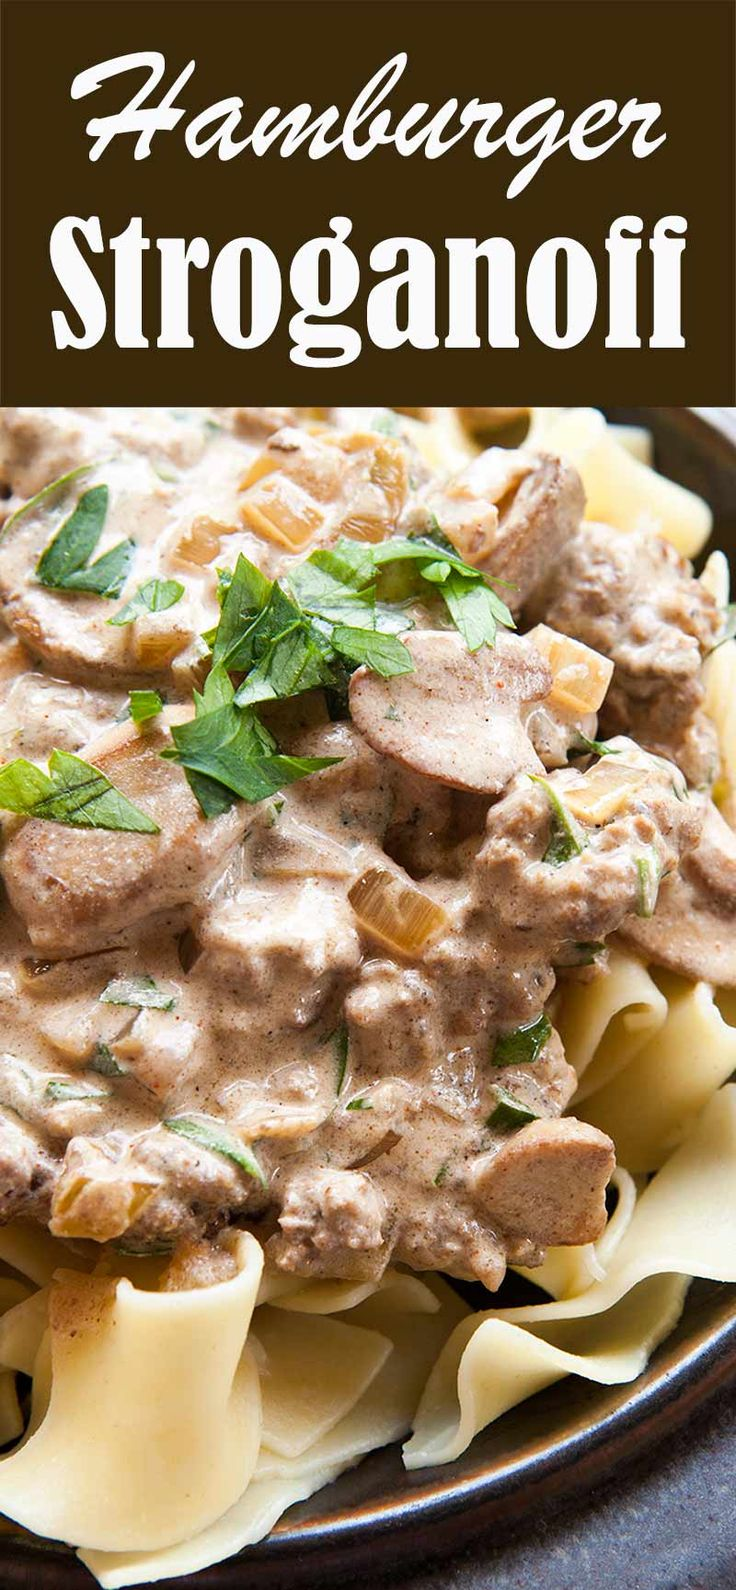 Easy hamburger stroganoff! All the flavor of beef stroganoff but easy on the budget. Cooks up in less than 30 minutes. Your family will LOVE it! On SimplyRecipes.com #stroganoff #beefstroganoff #hamburger